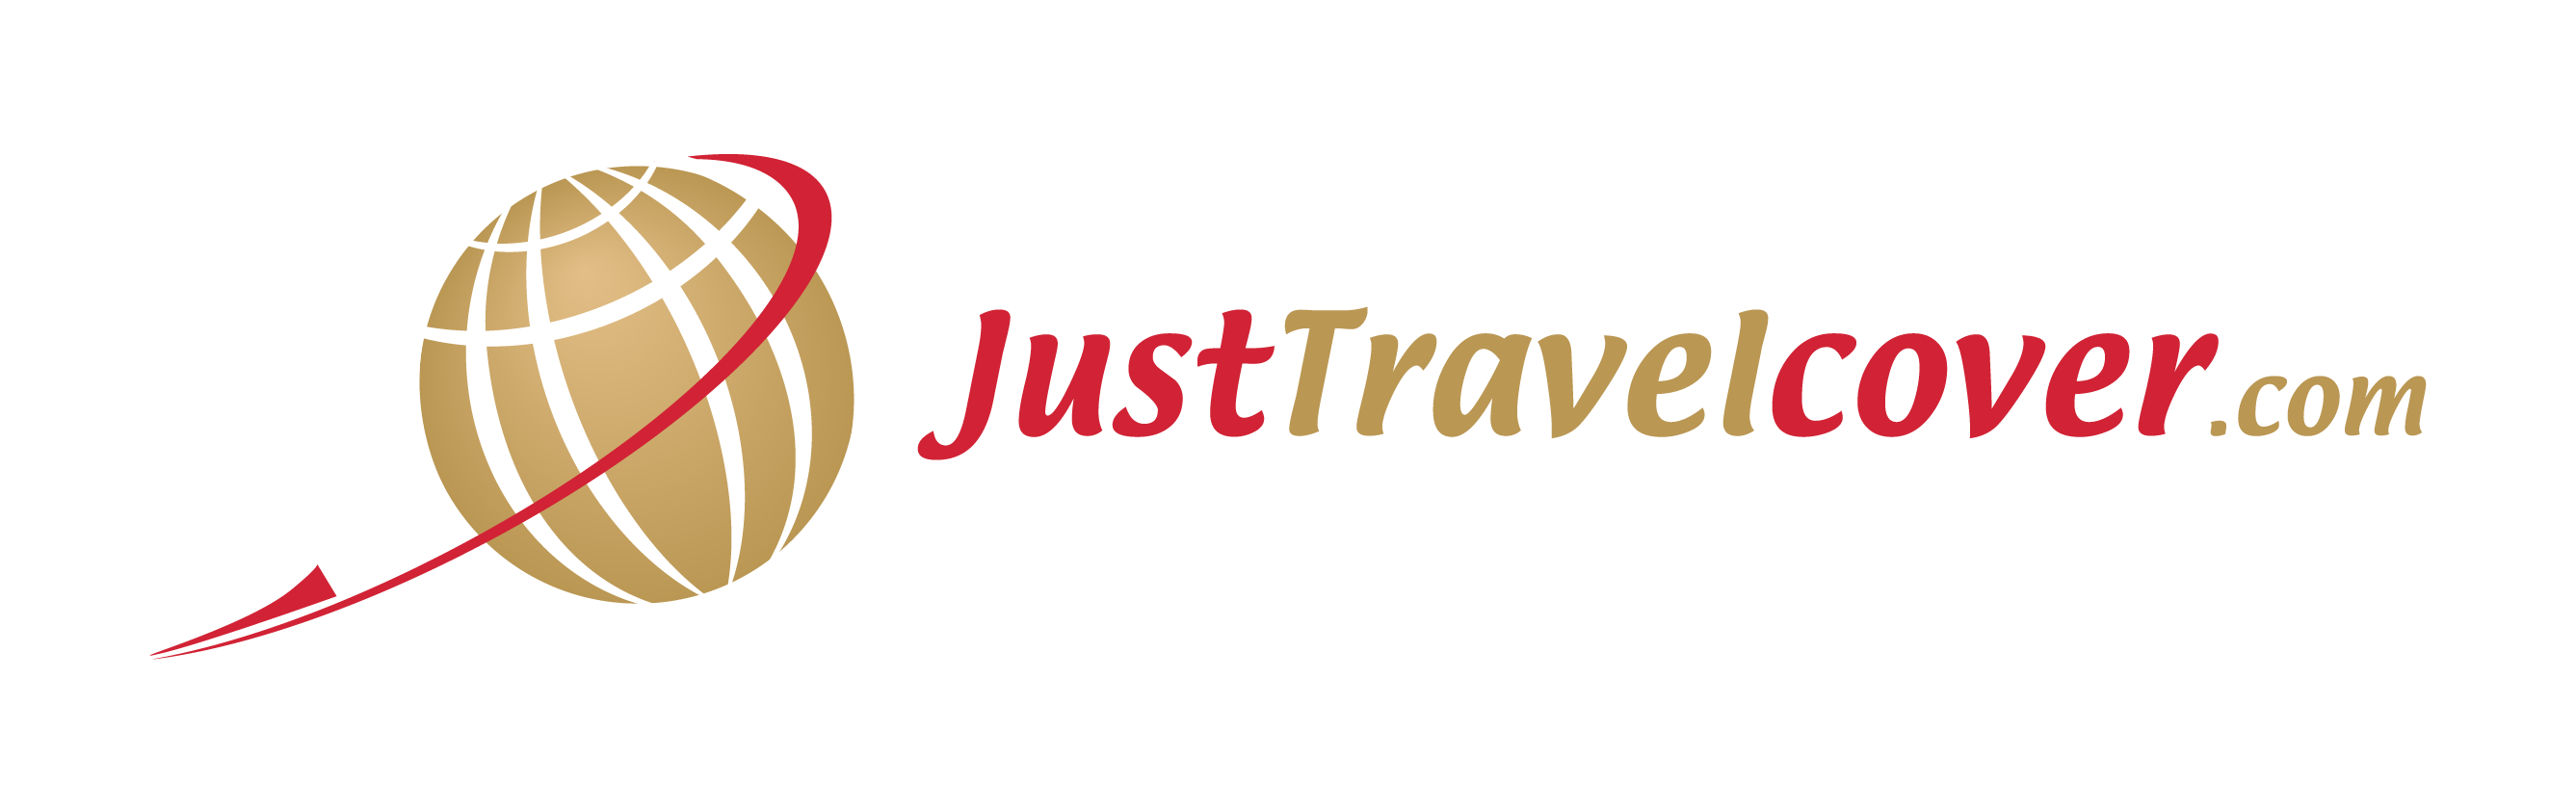 JustTravelCover.com